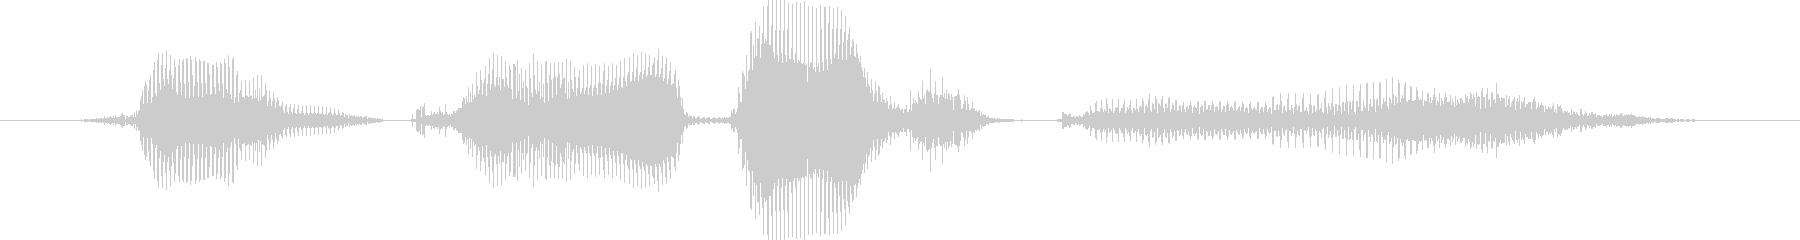 Take it seriously (women, girls)'s unreproduced waveform